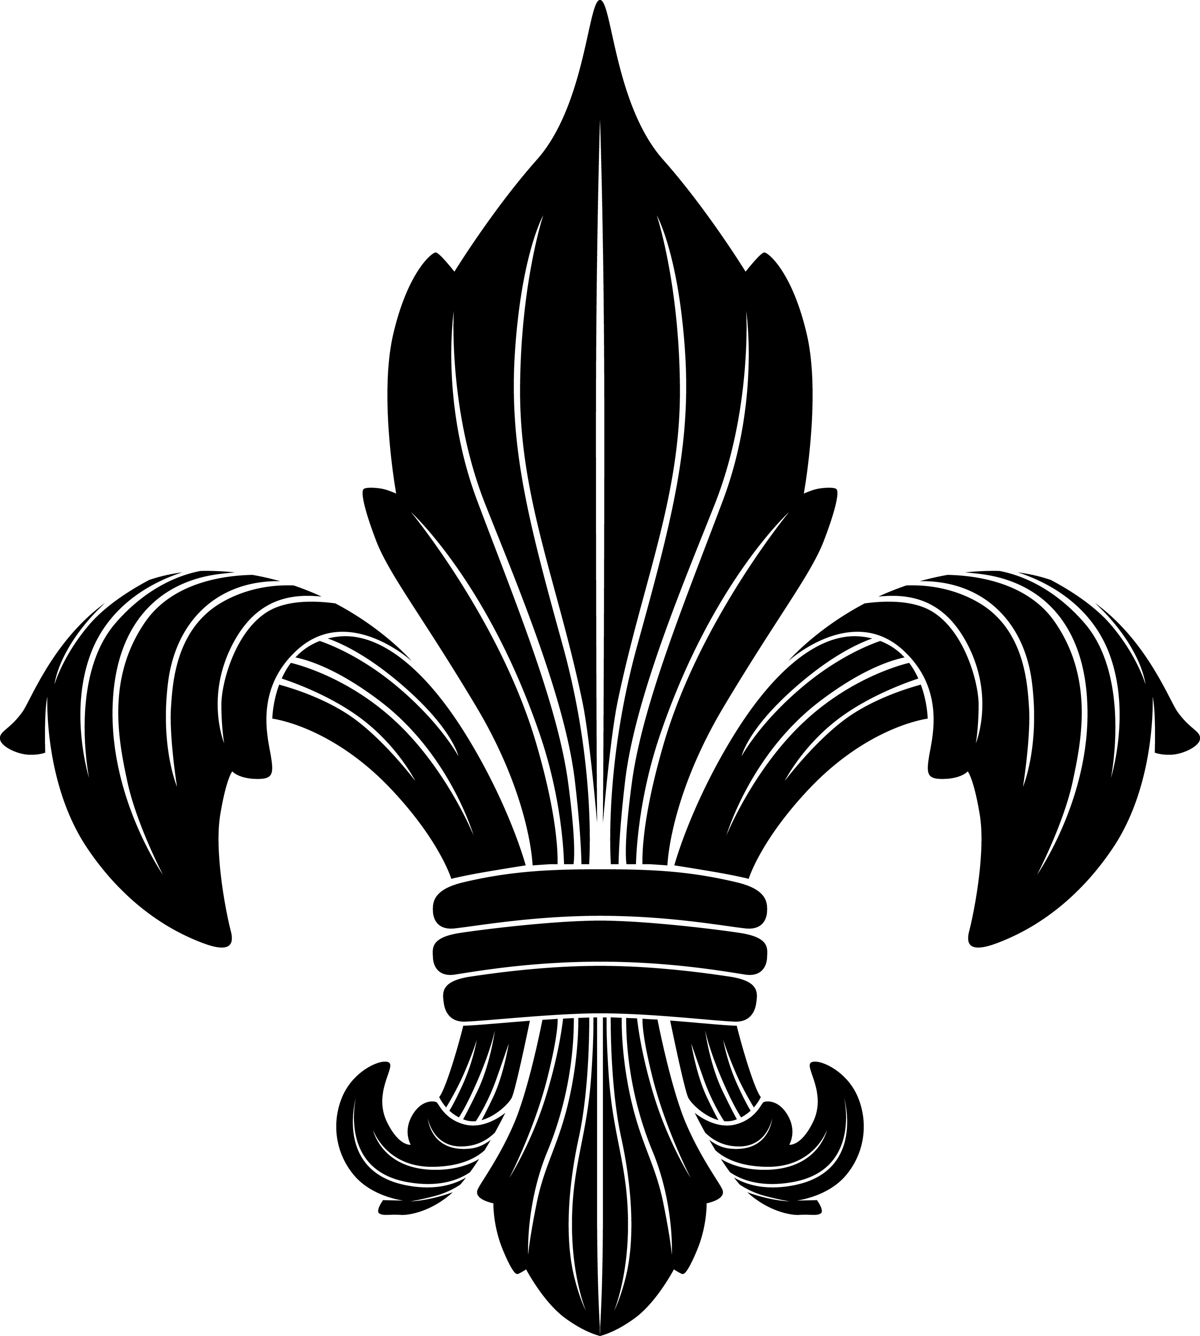 1200x1336 Incredible Designs For A Fleur De Lis Tattoo And Its True Meaning